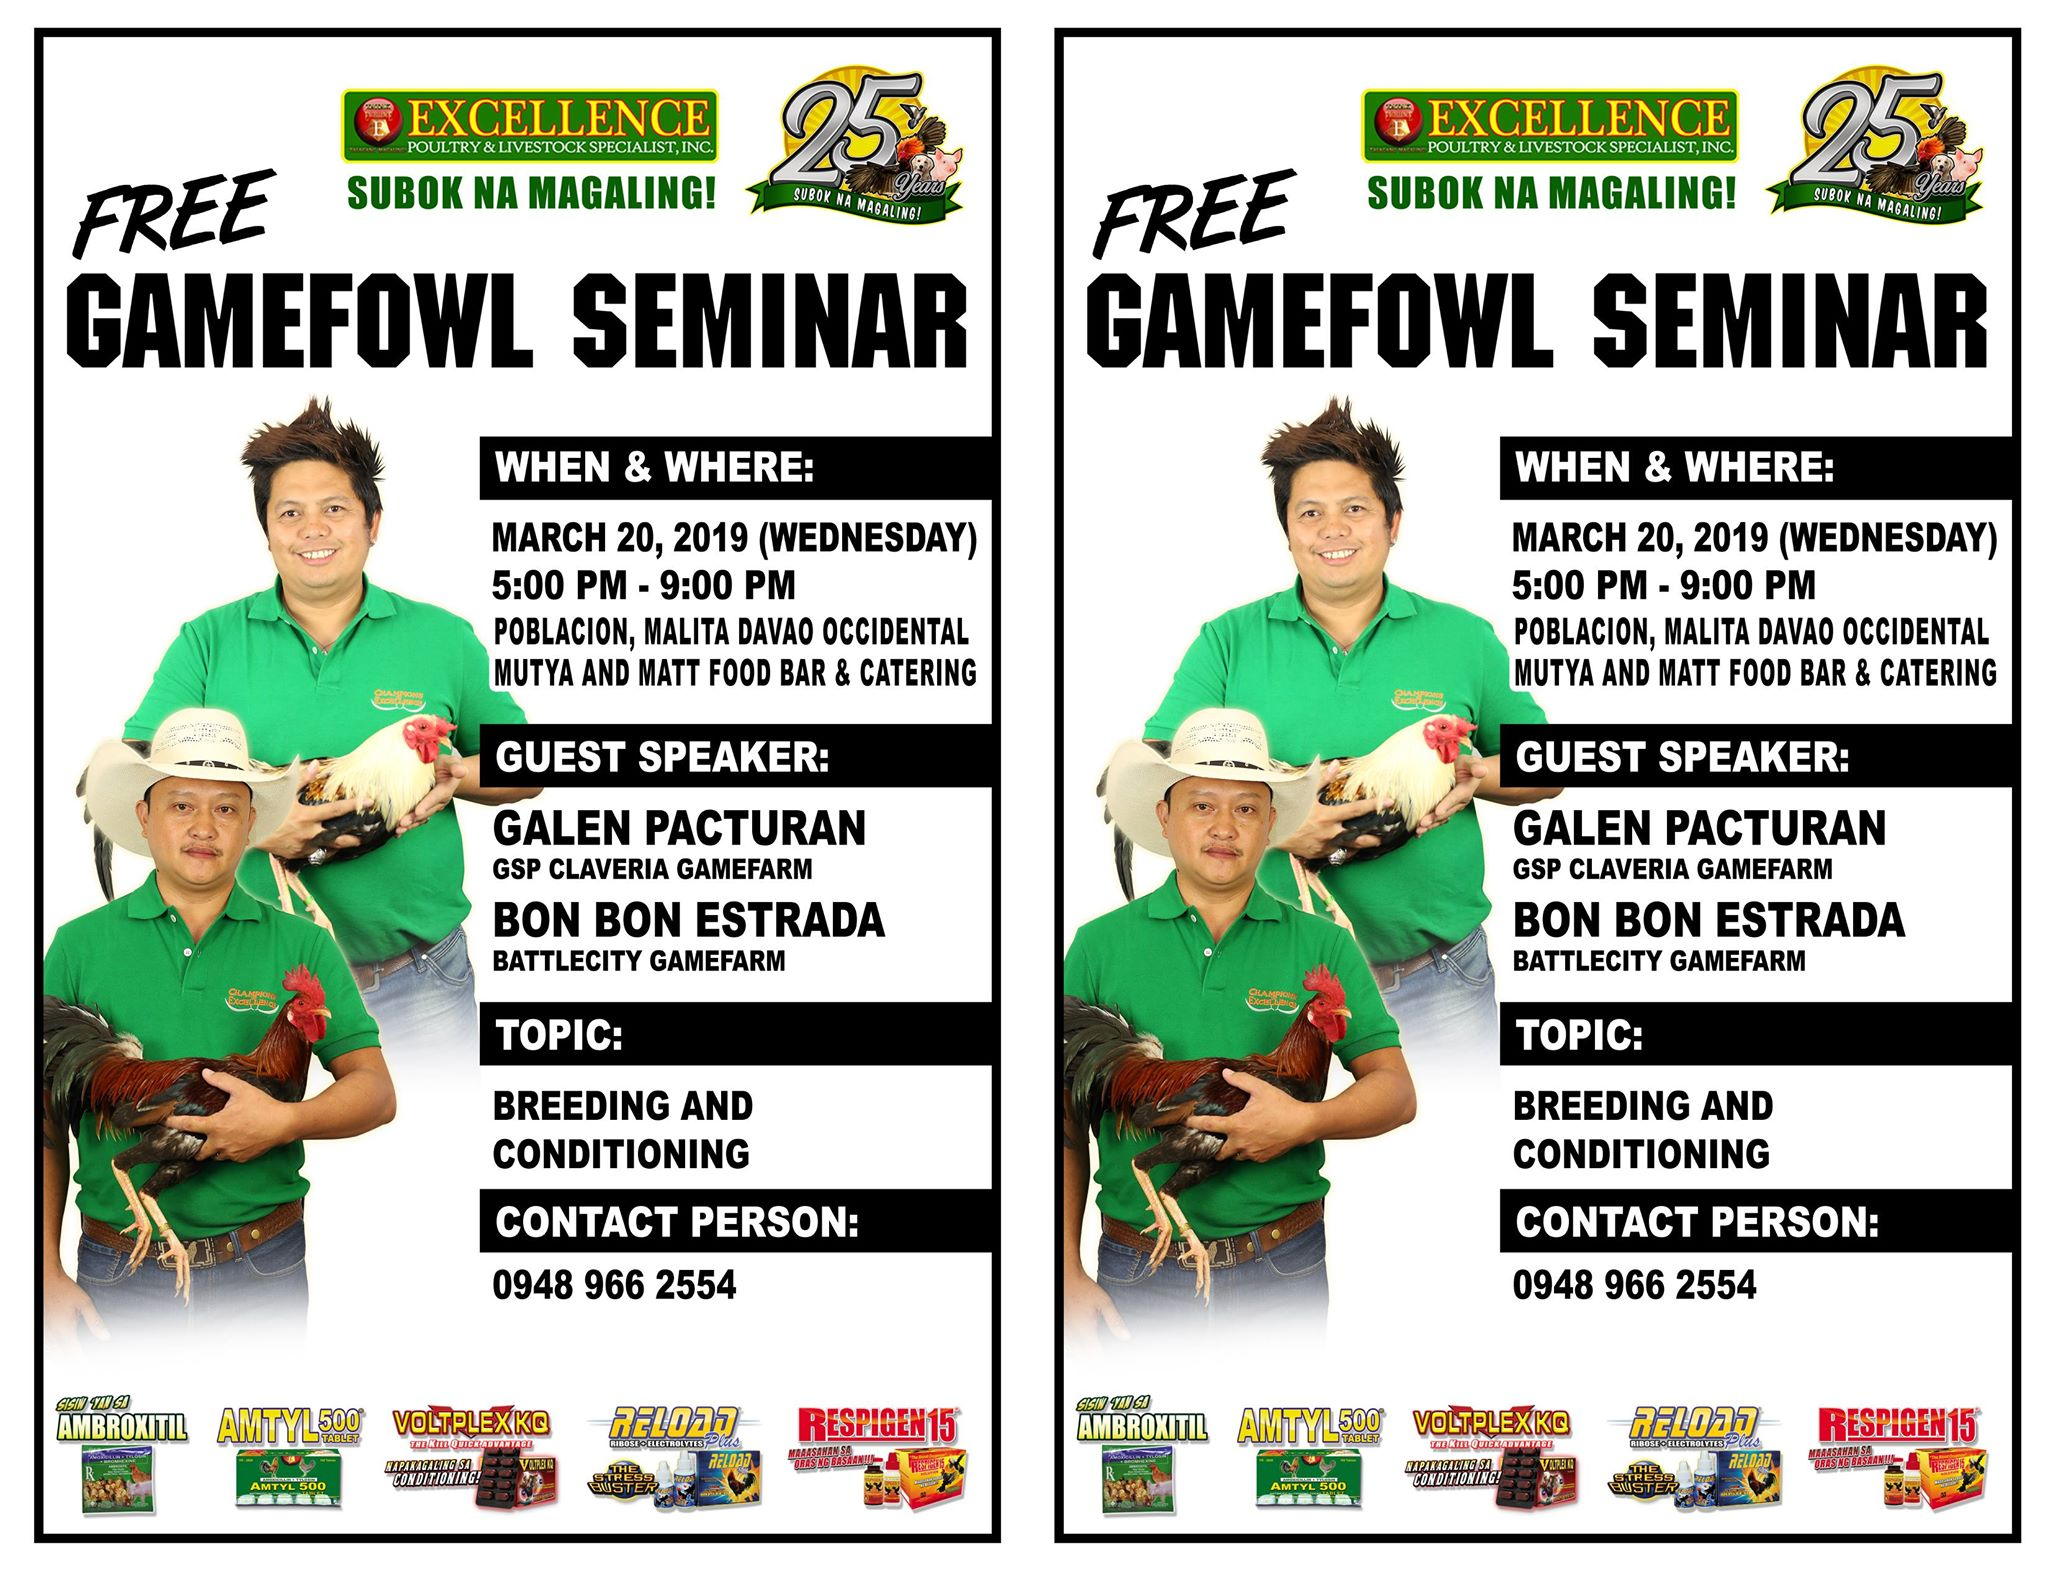 FREE Gamefowl Seminars | Excellence Poultry and Livestock